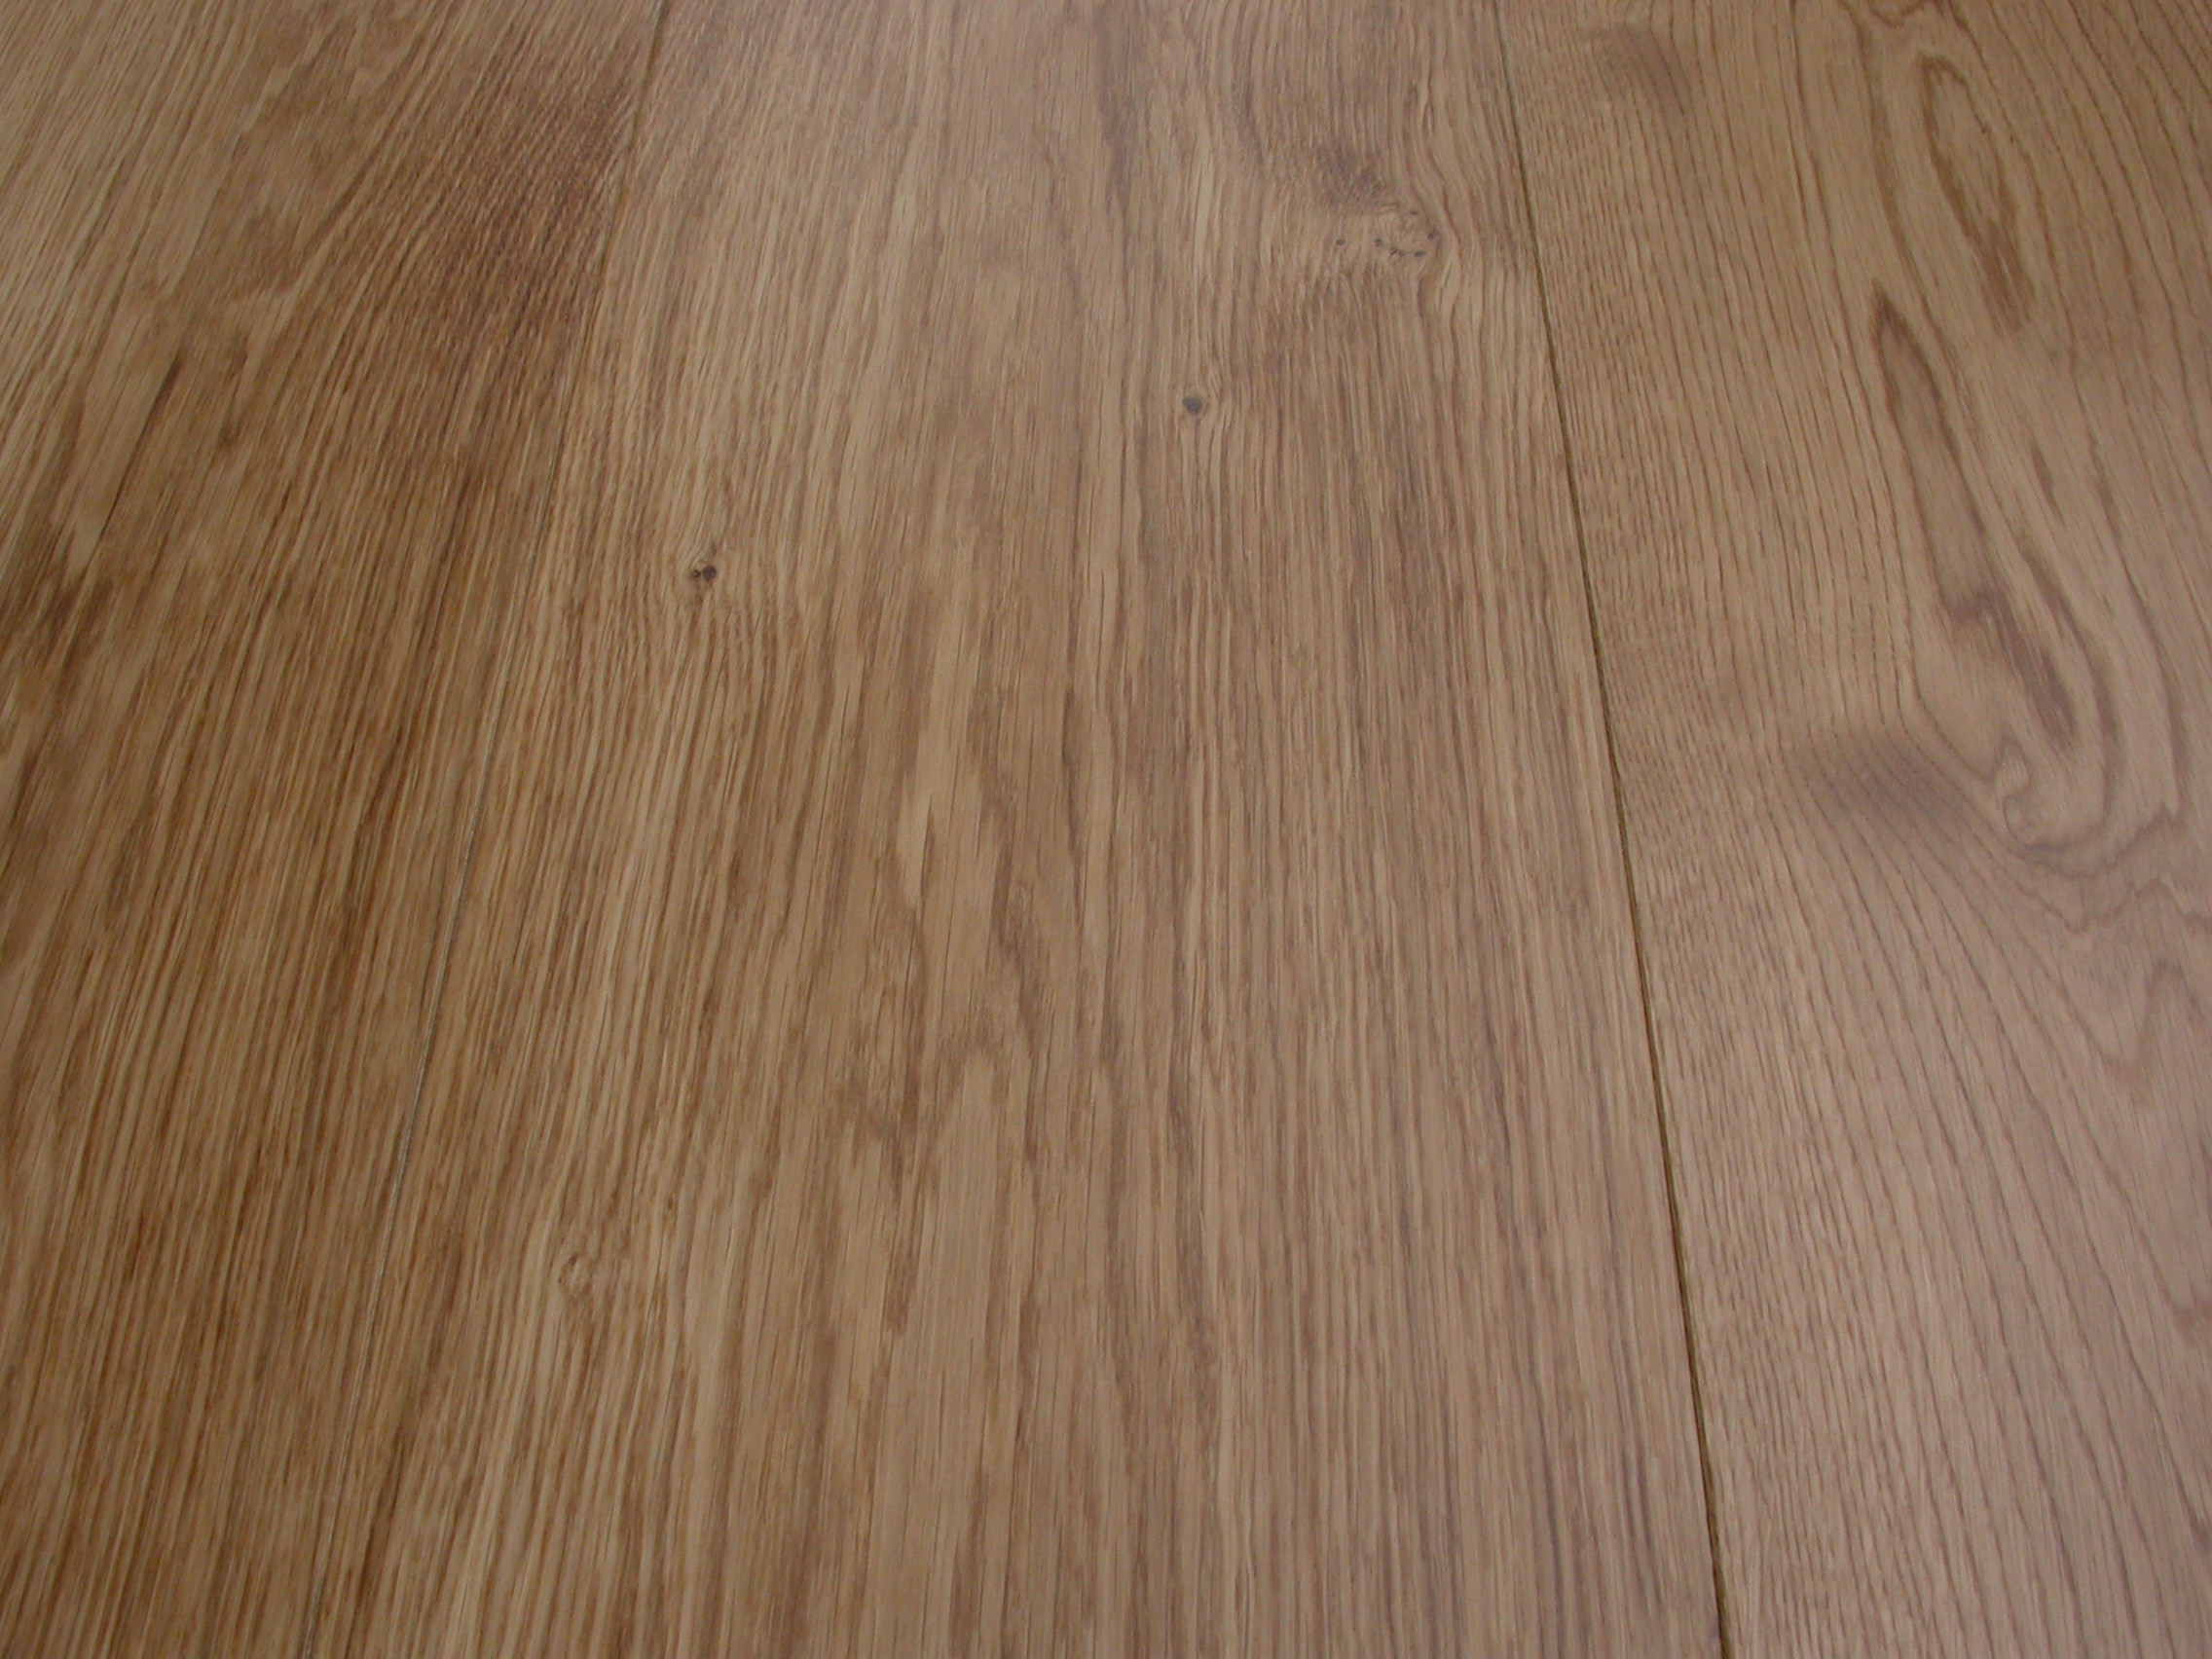 OAK NATURAL LACQUERED